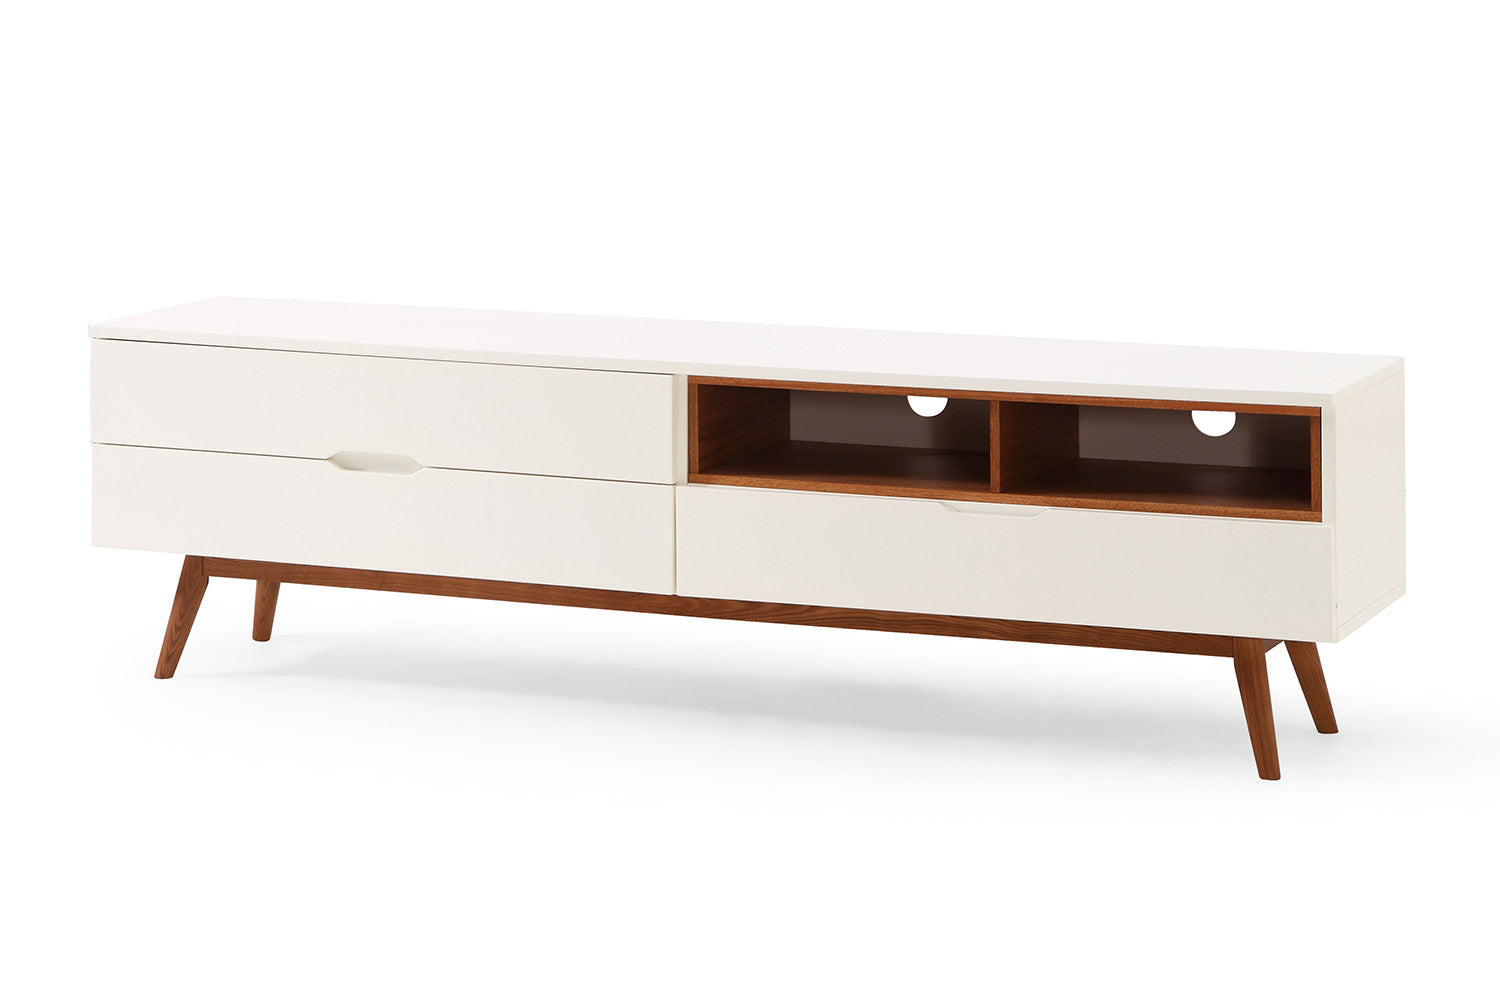 Meuble tv design scandinave lema dewarens for Copie de meubles design